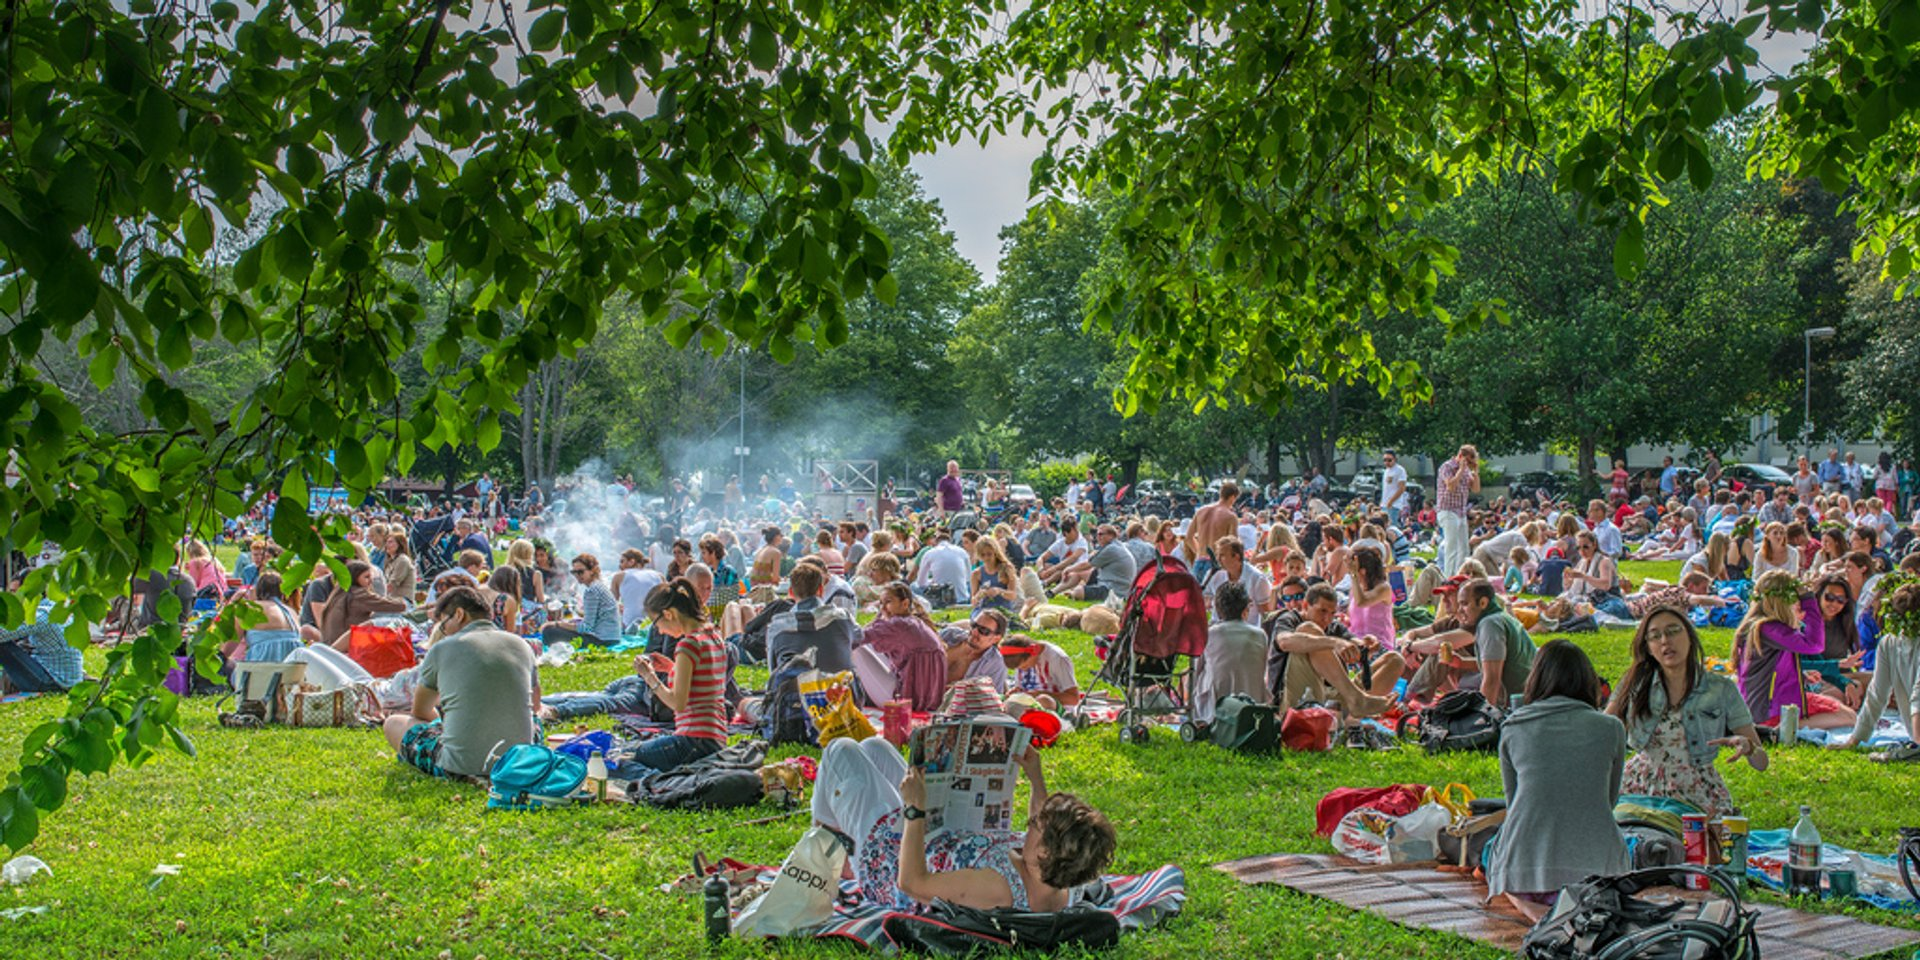 Best time for Midsummer in Sweden 2019